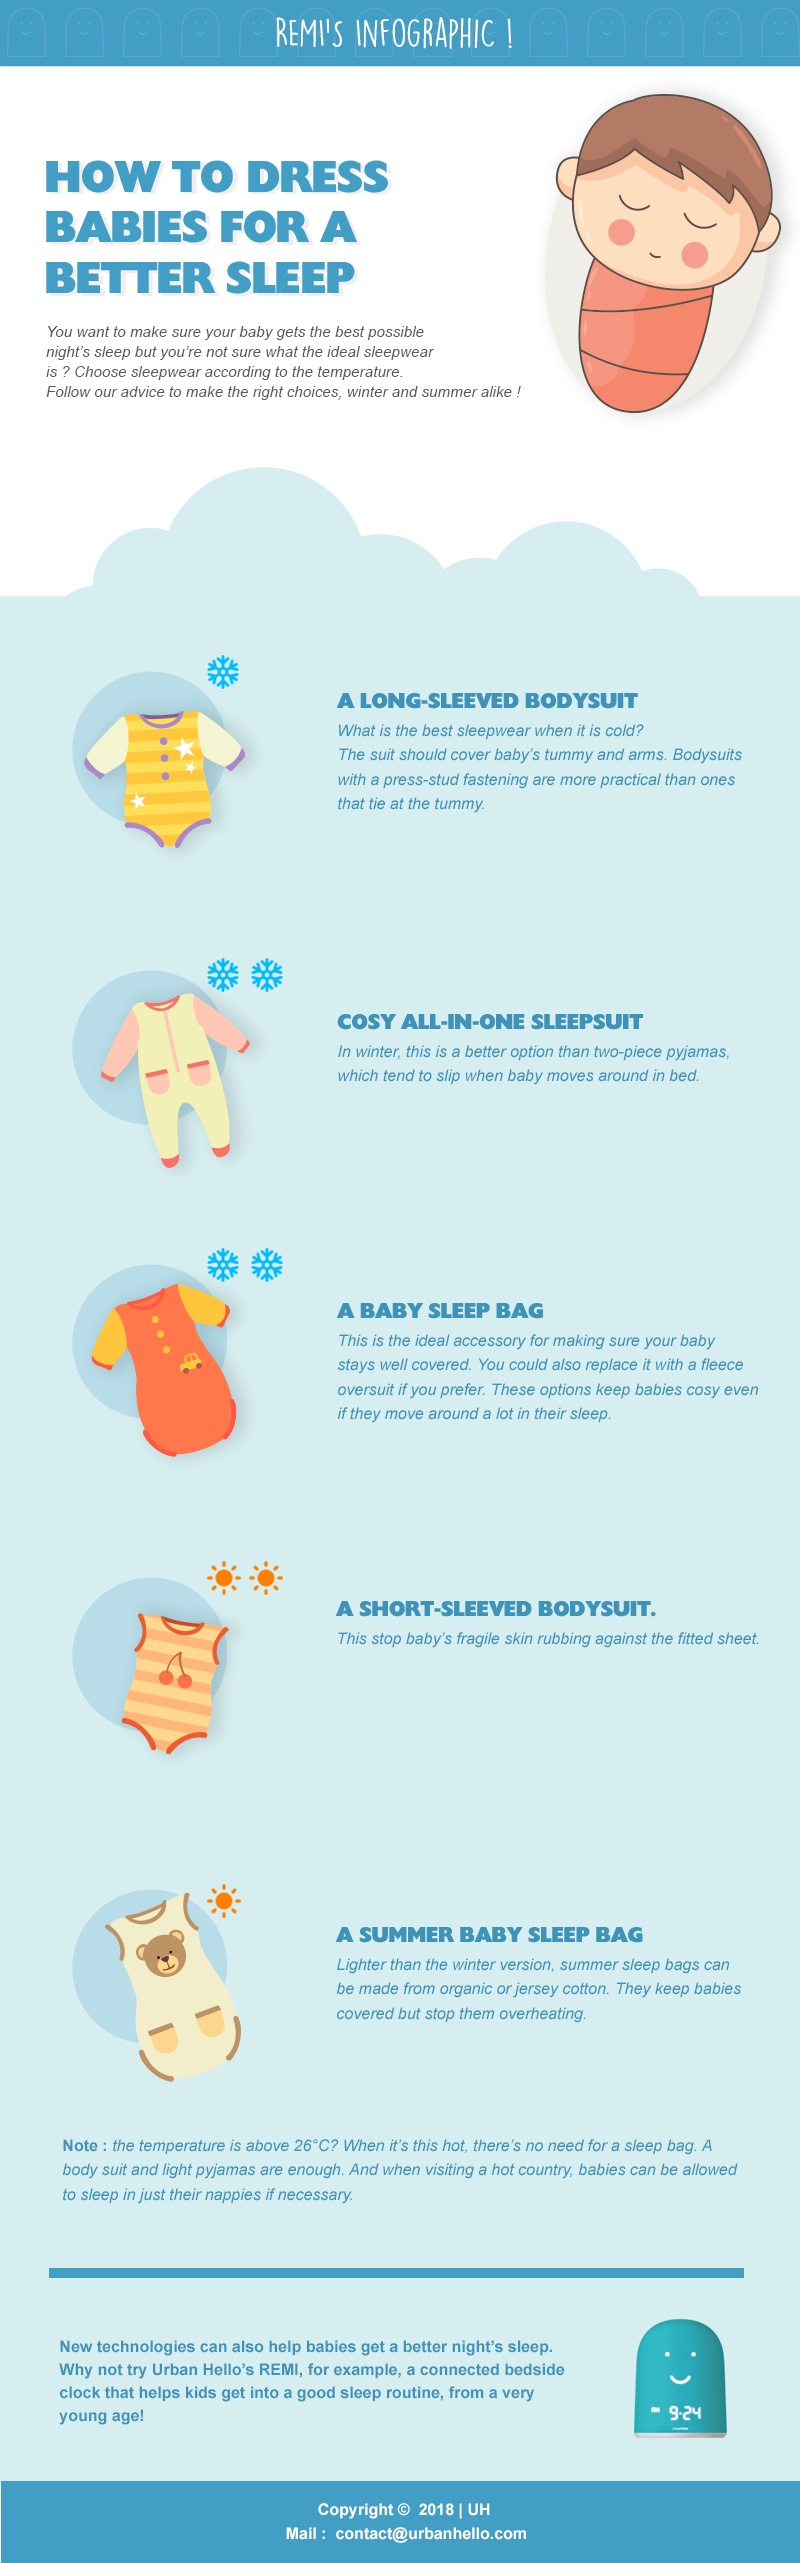 How To Dress Babies For A Better Sleep ? #infographic